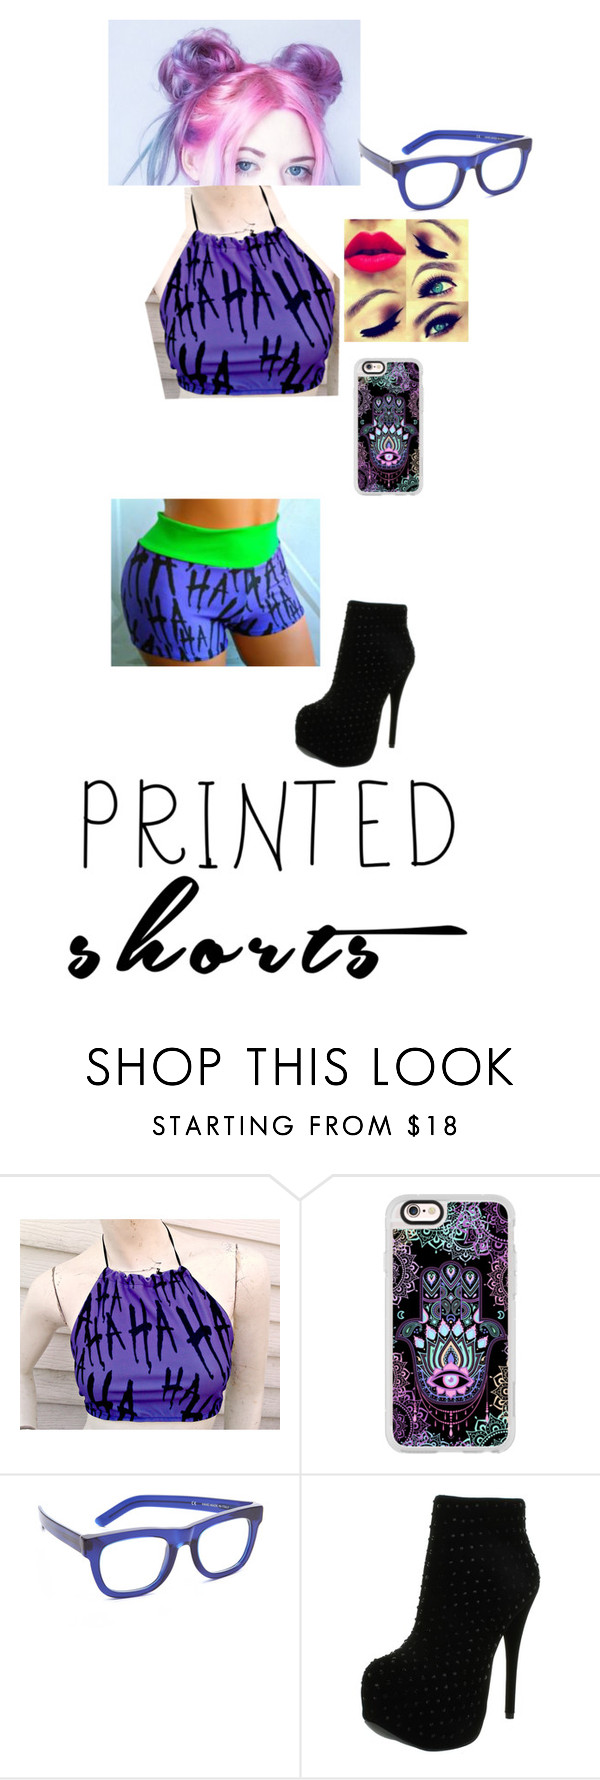 """""""Printed shorts"""" by mad-hatter19 ❤ liked on Polyvore featuring Casetify, RetroSuperFuture and Luichiny"""